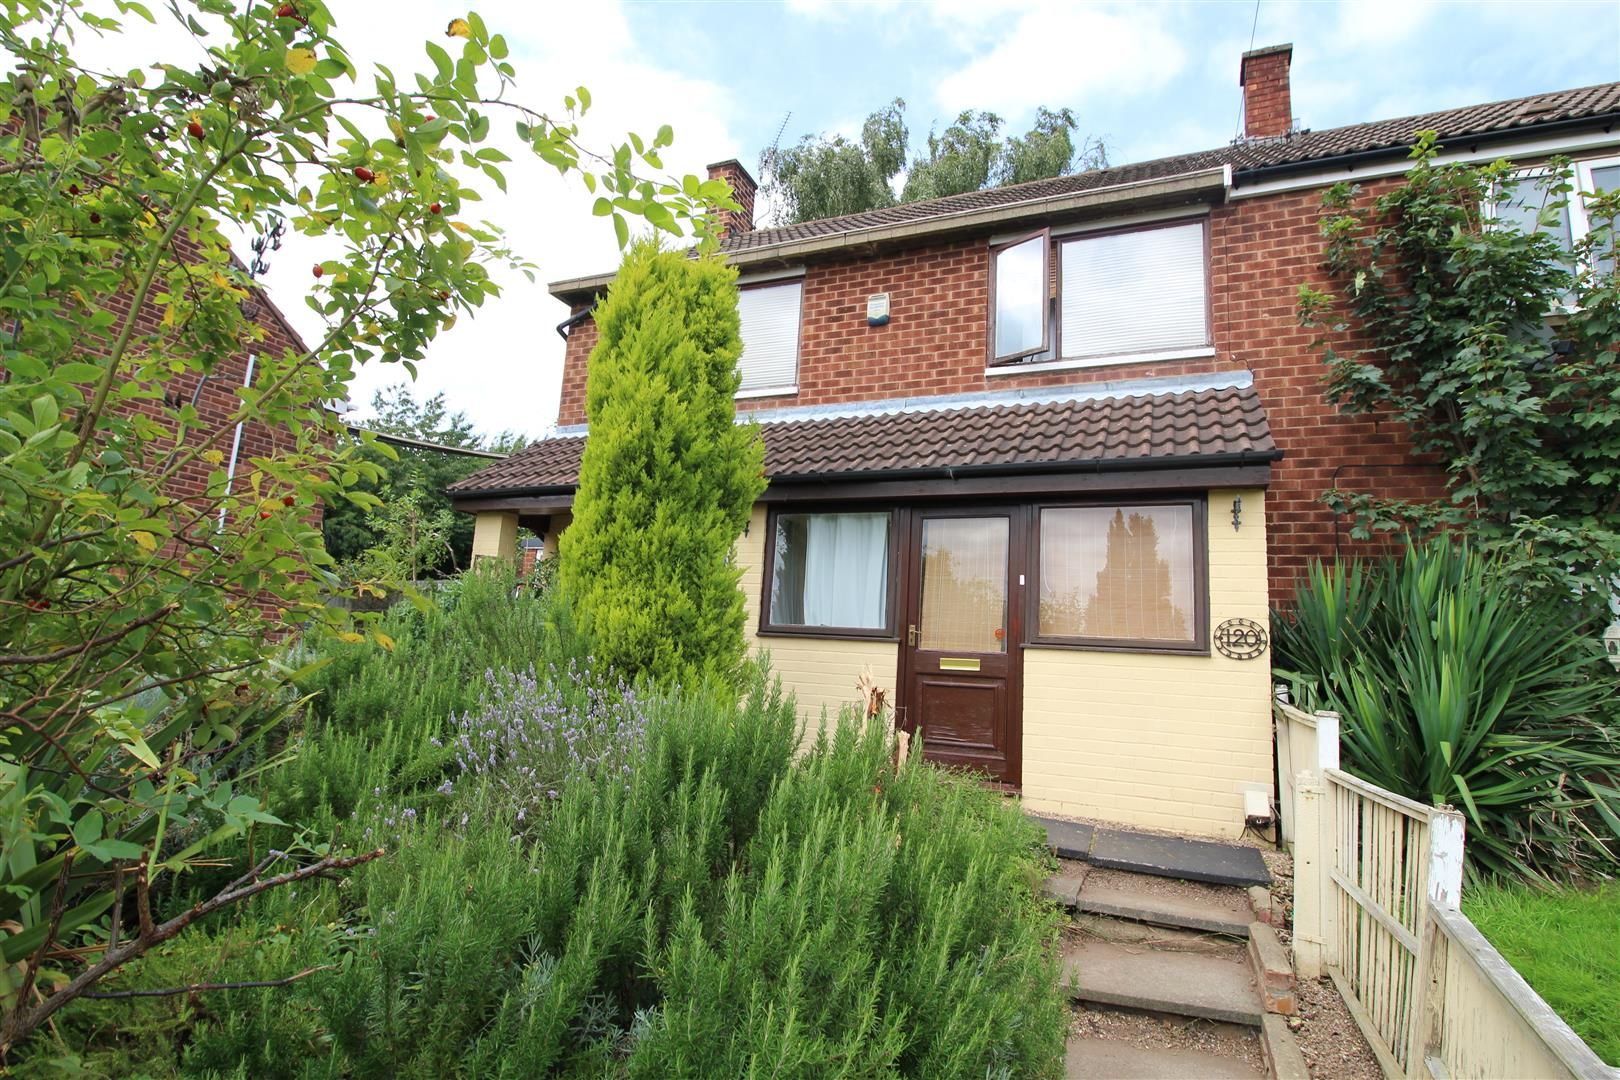 3 Bedrooms End Of Terrace House for sale in Inham Road, Chilwell